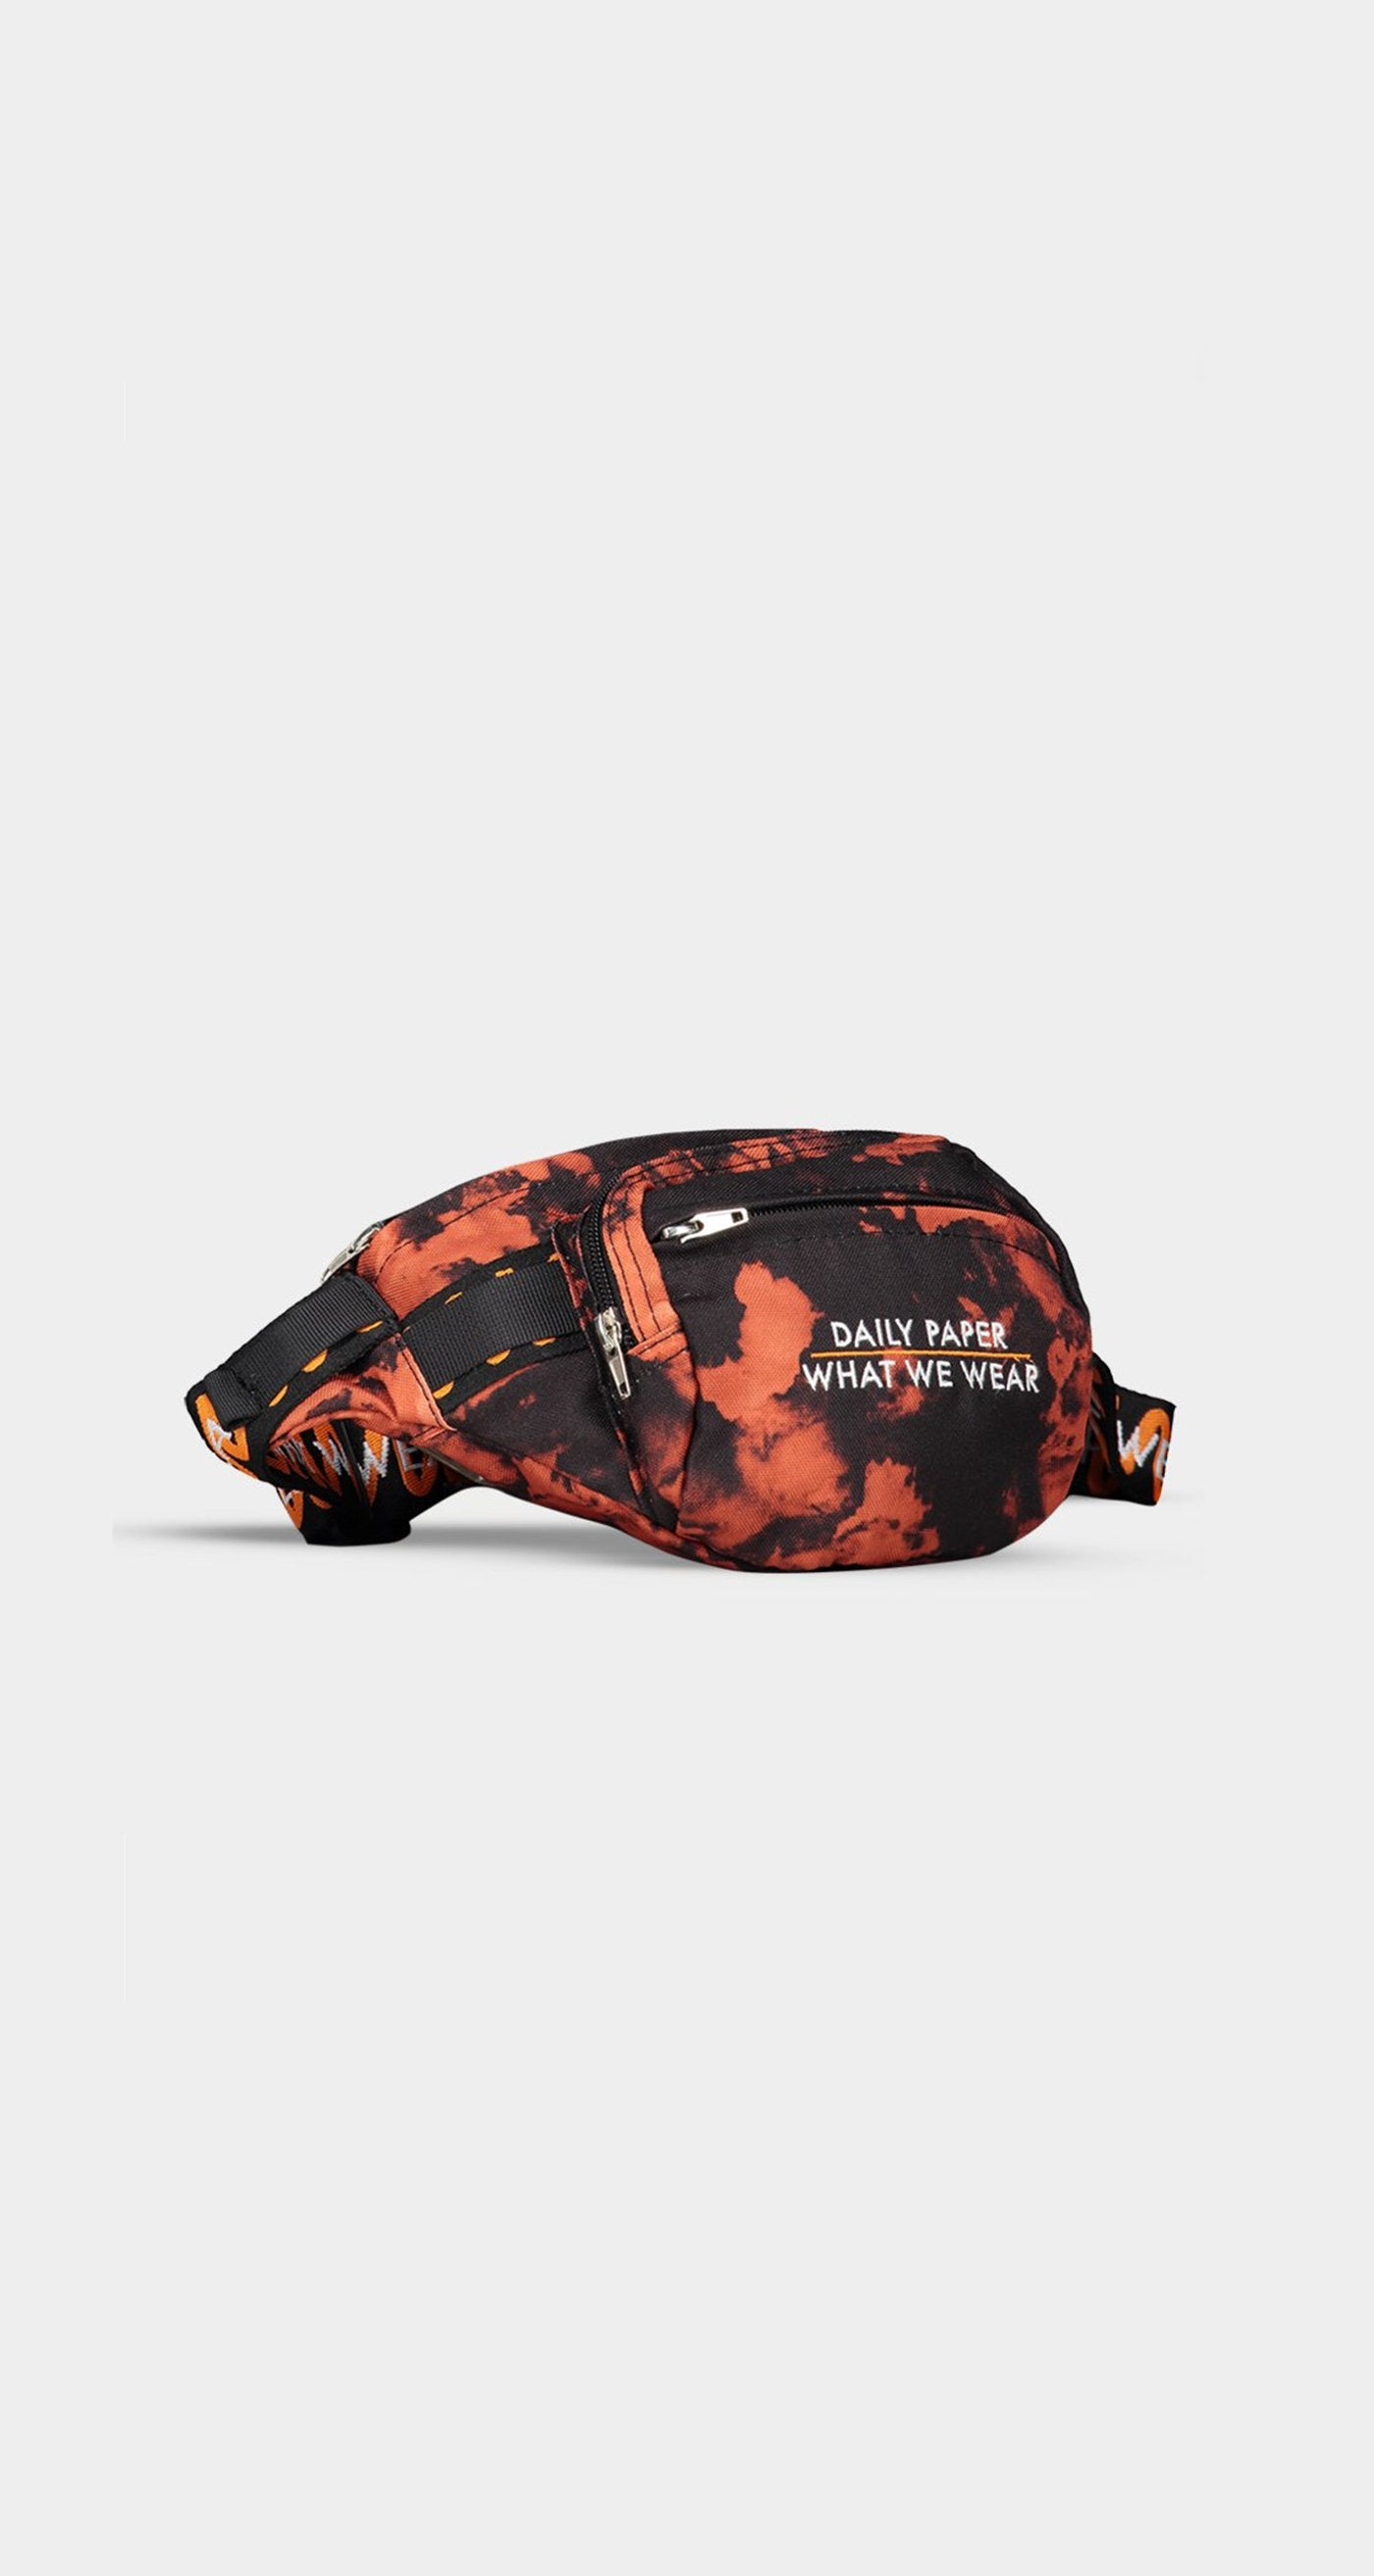 Daily Paper x WWW Waistpack Black/Orange